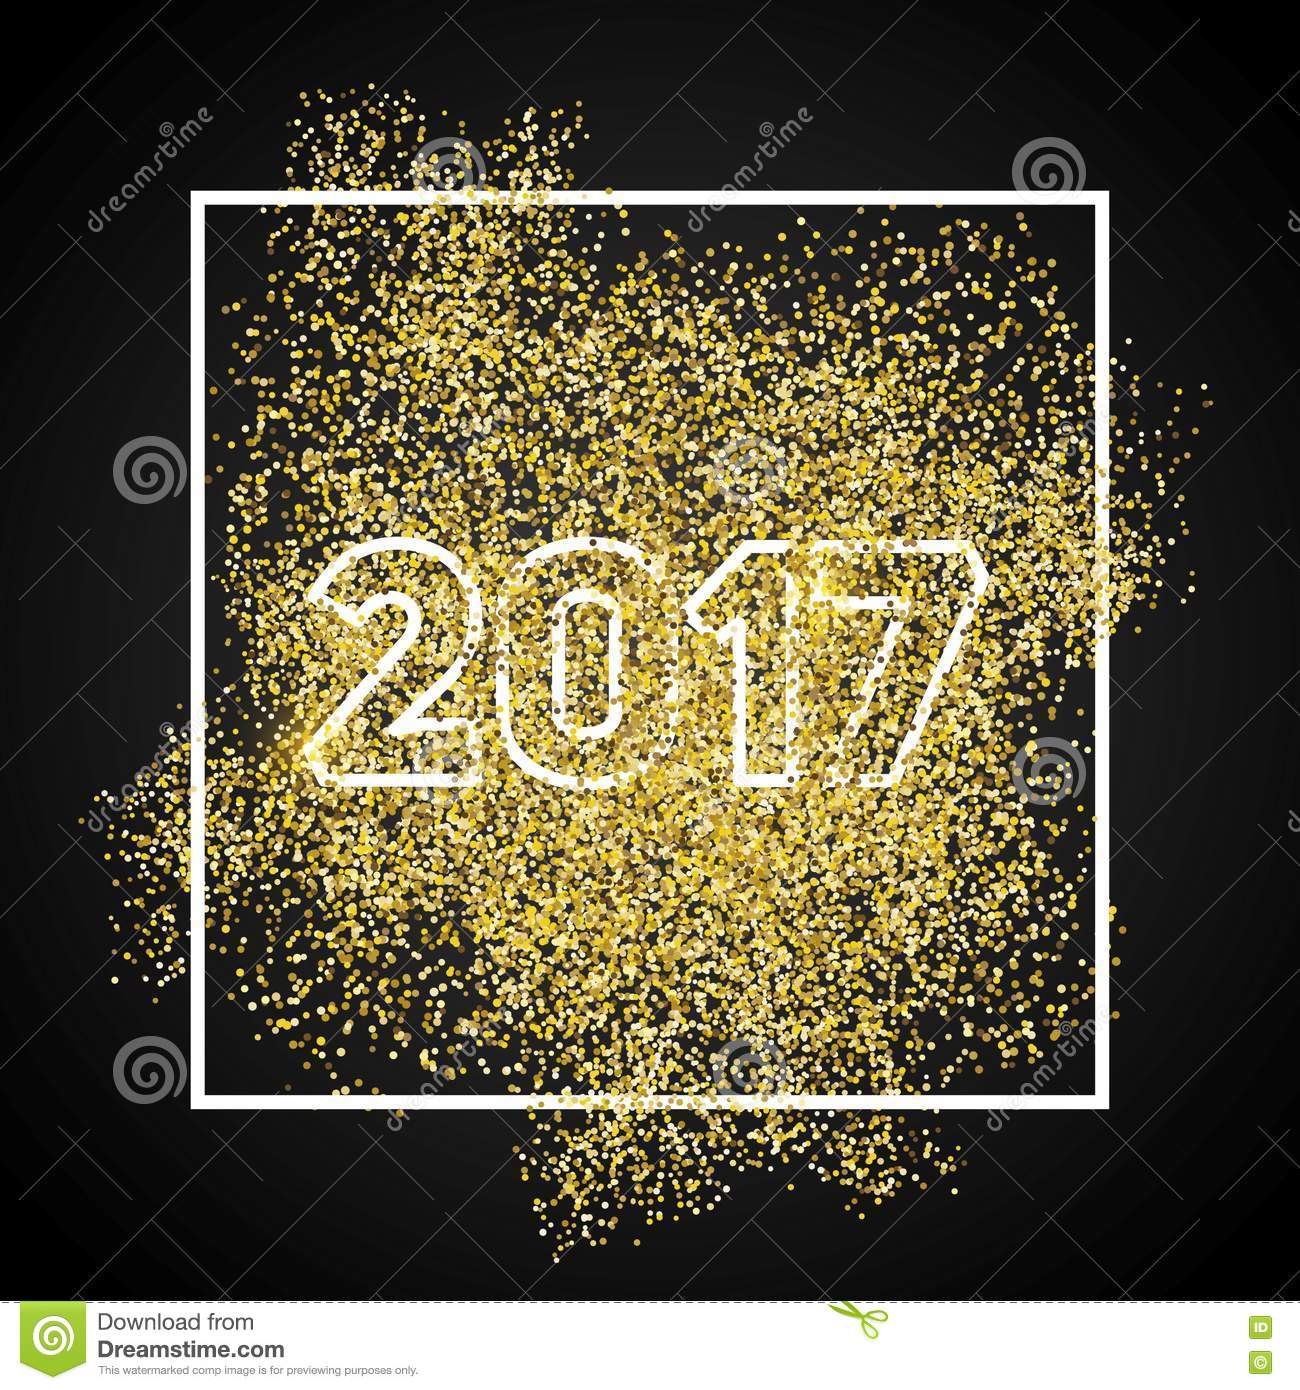 happy new year 2017 gold glitter new year gold background for flyer banner web header poster sign abstract background for text quote